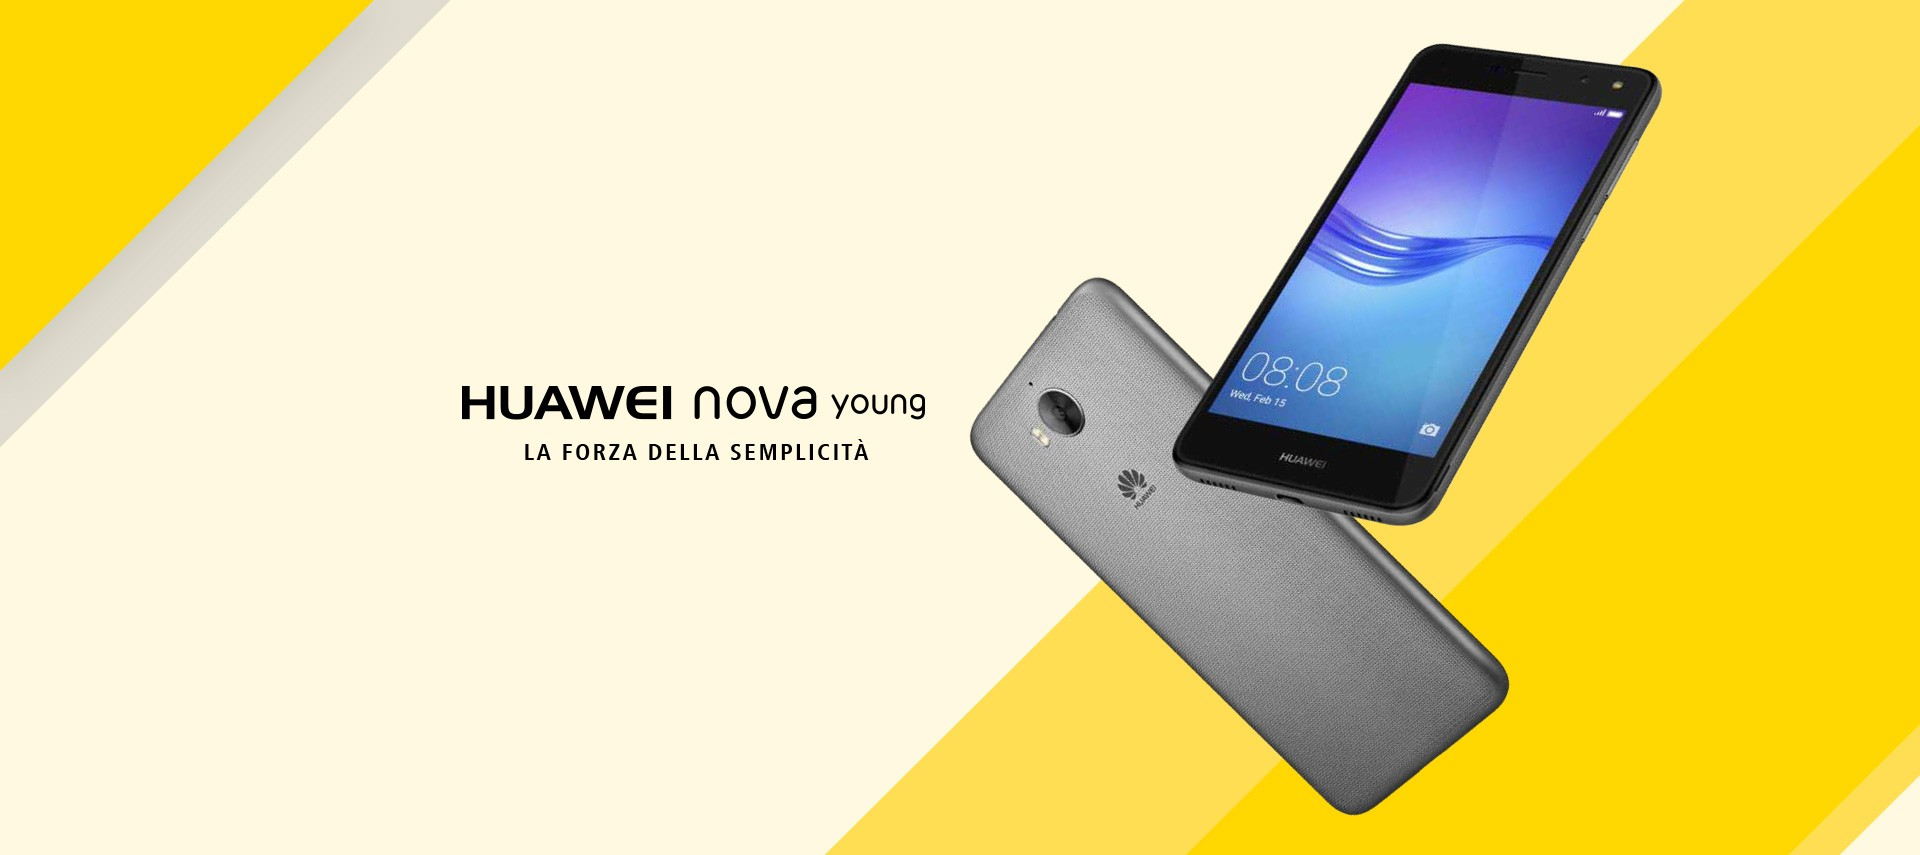 How to get TWRP and root on Huawei Nova Young | Guide